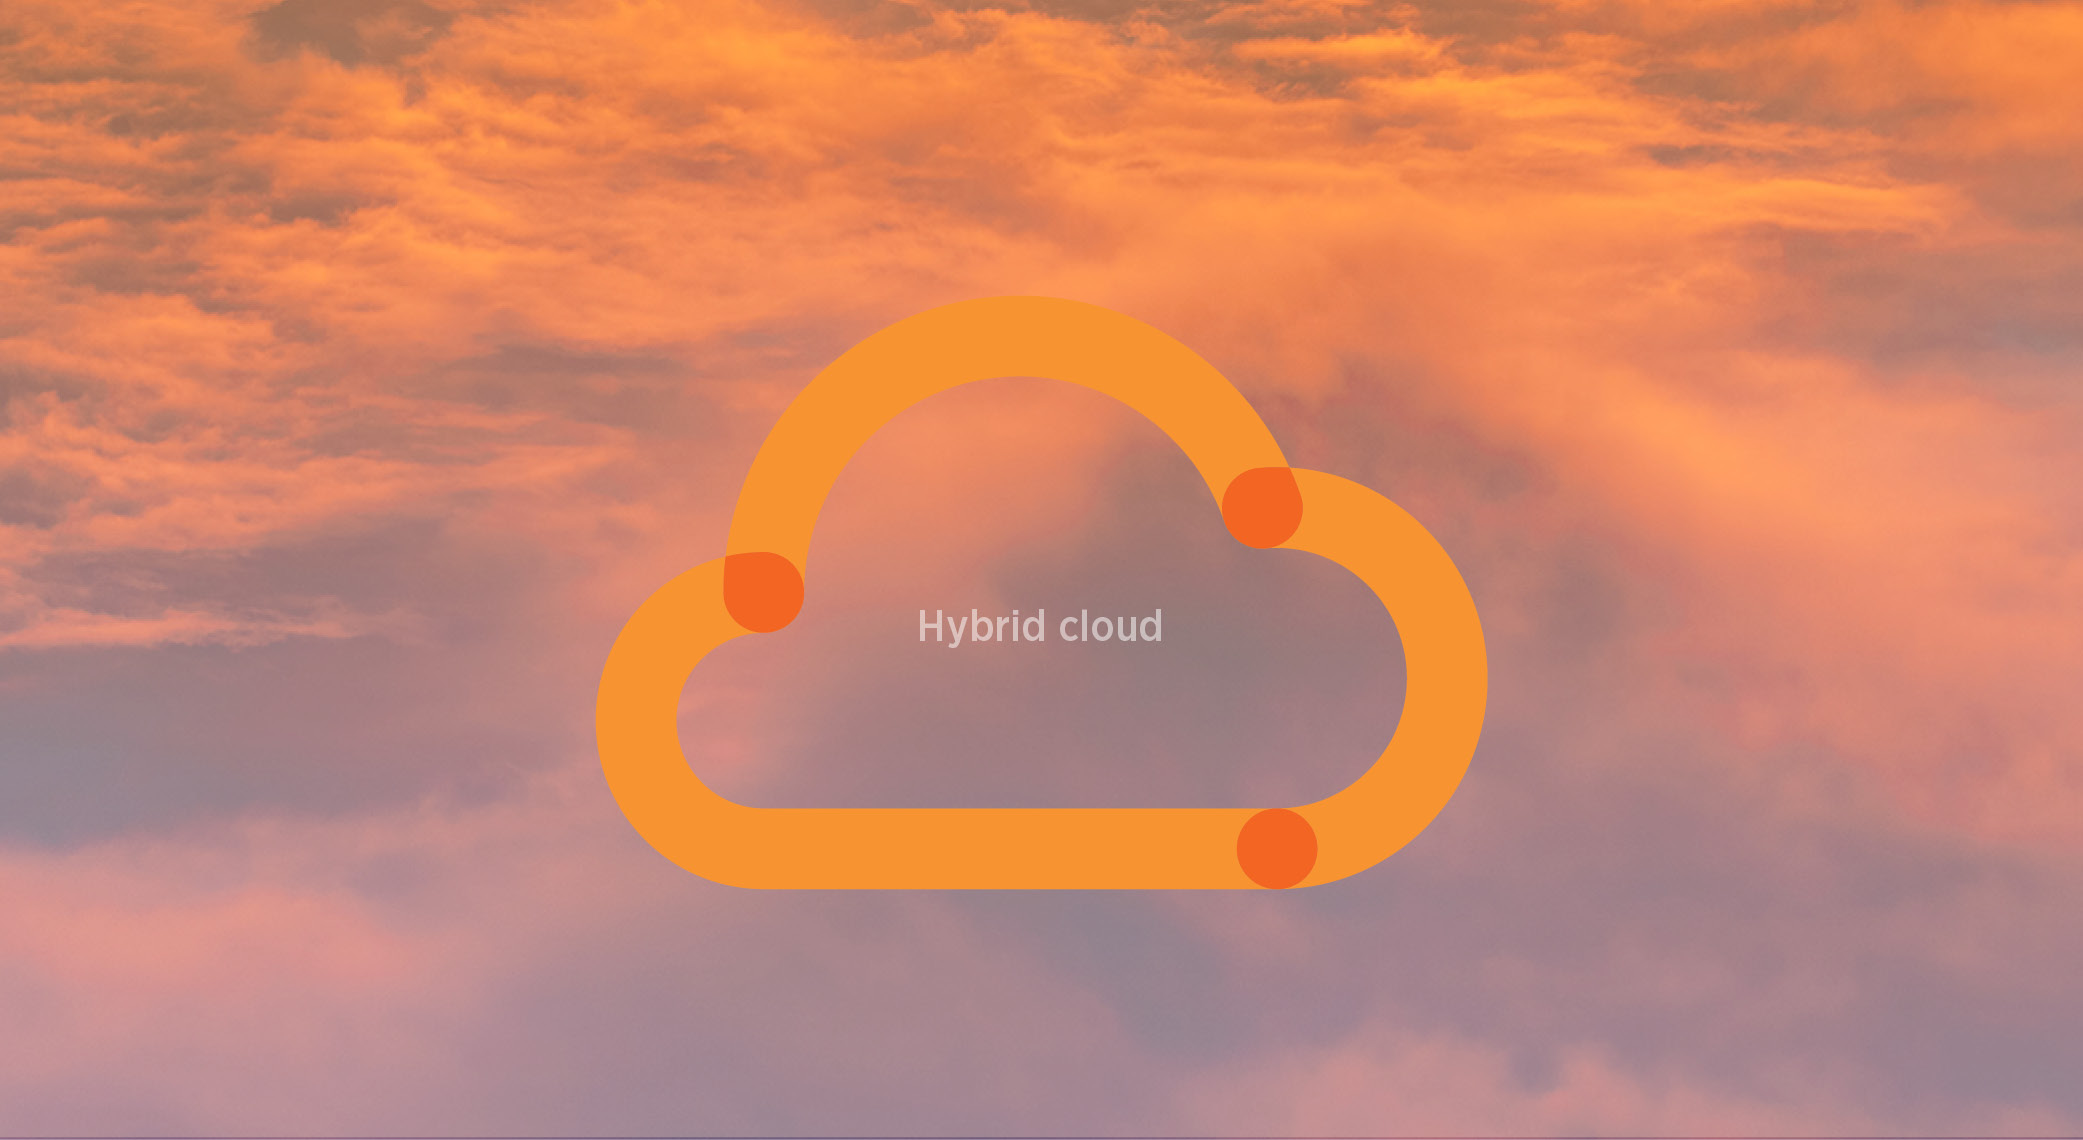 Kind of cloud-Hybrid cloud